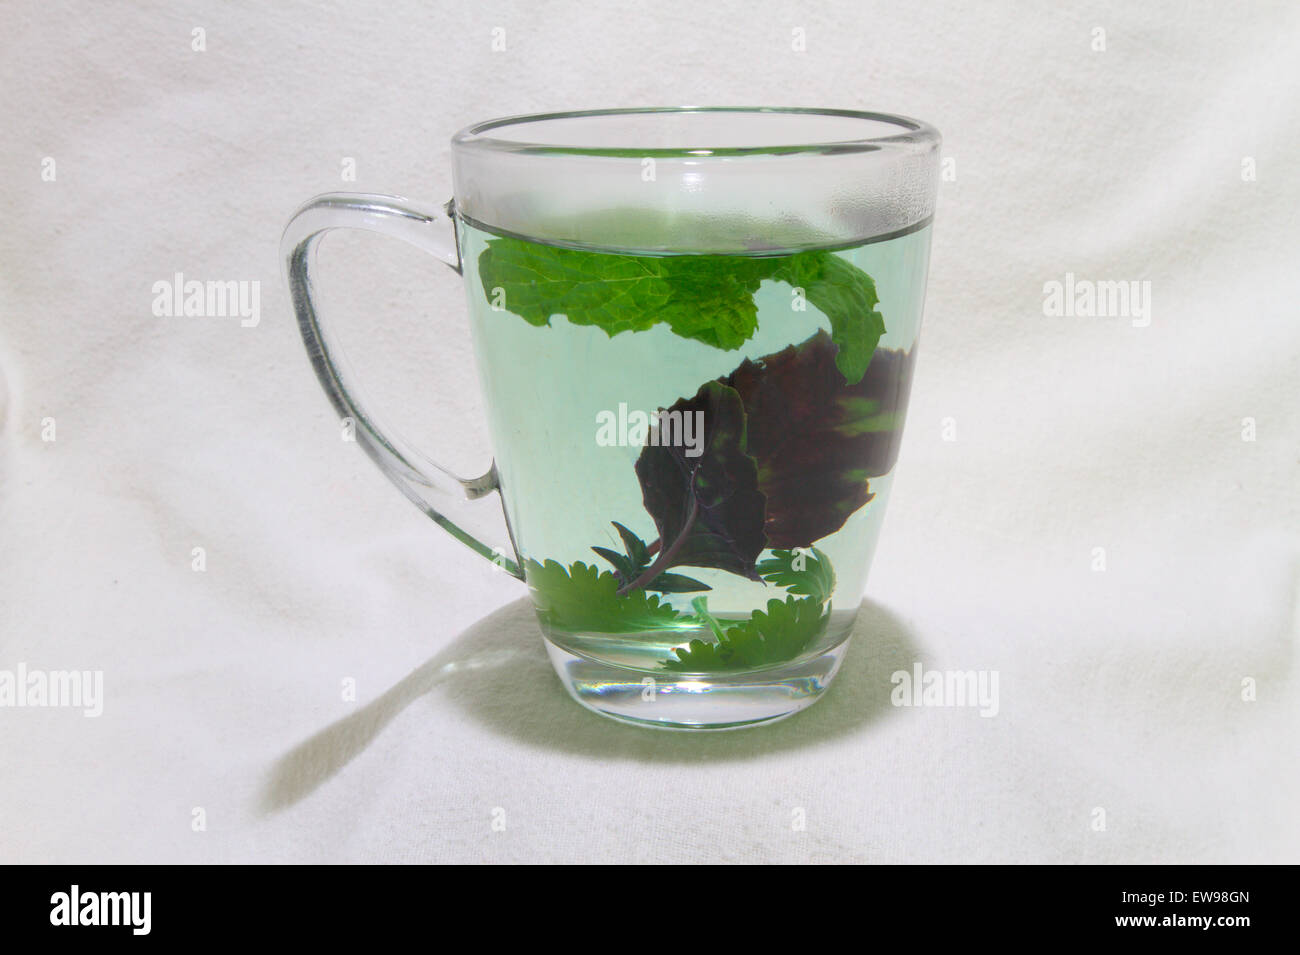 Steam on the rim of a mug filled with fresh herbal tea - Stock Image